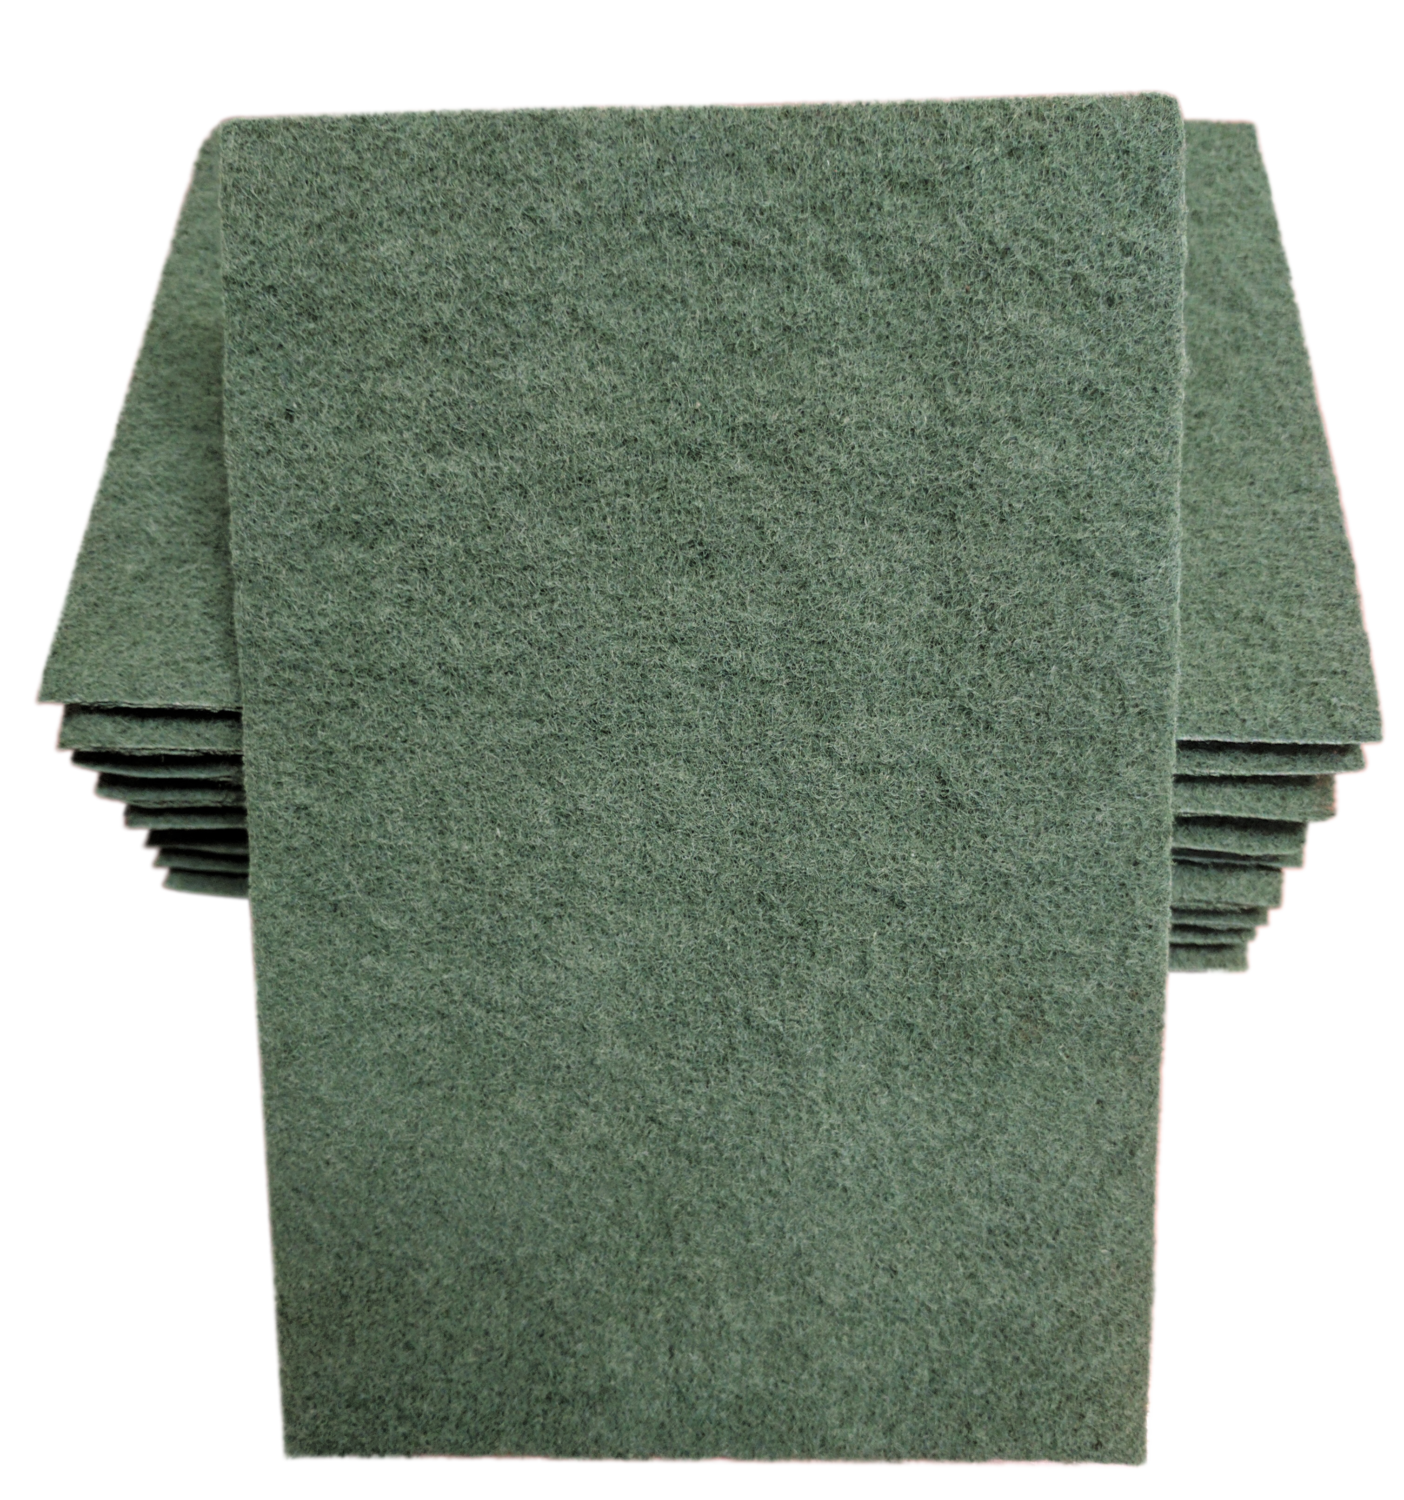 ISW SCOURING PADS synthetic steel wool